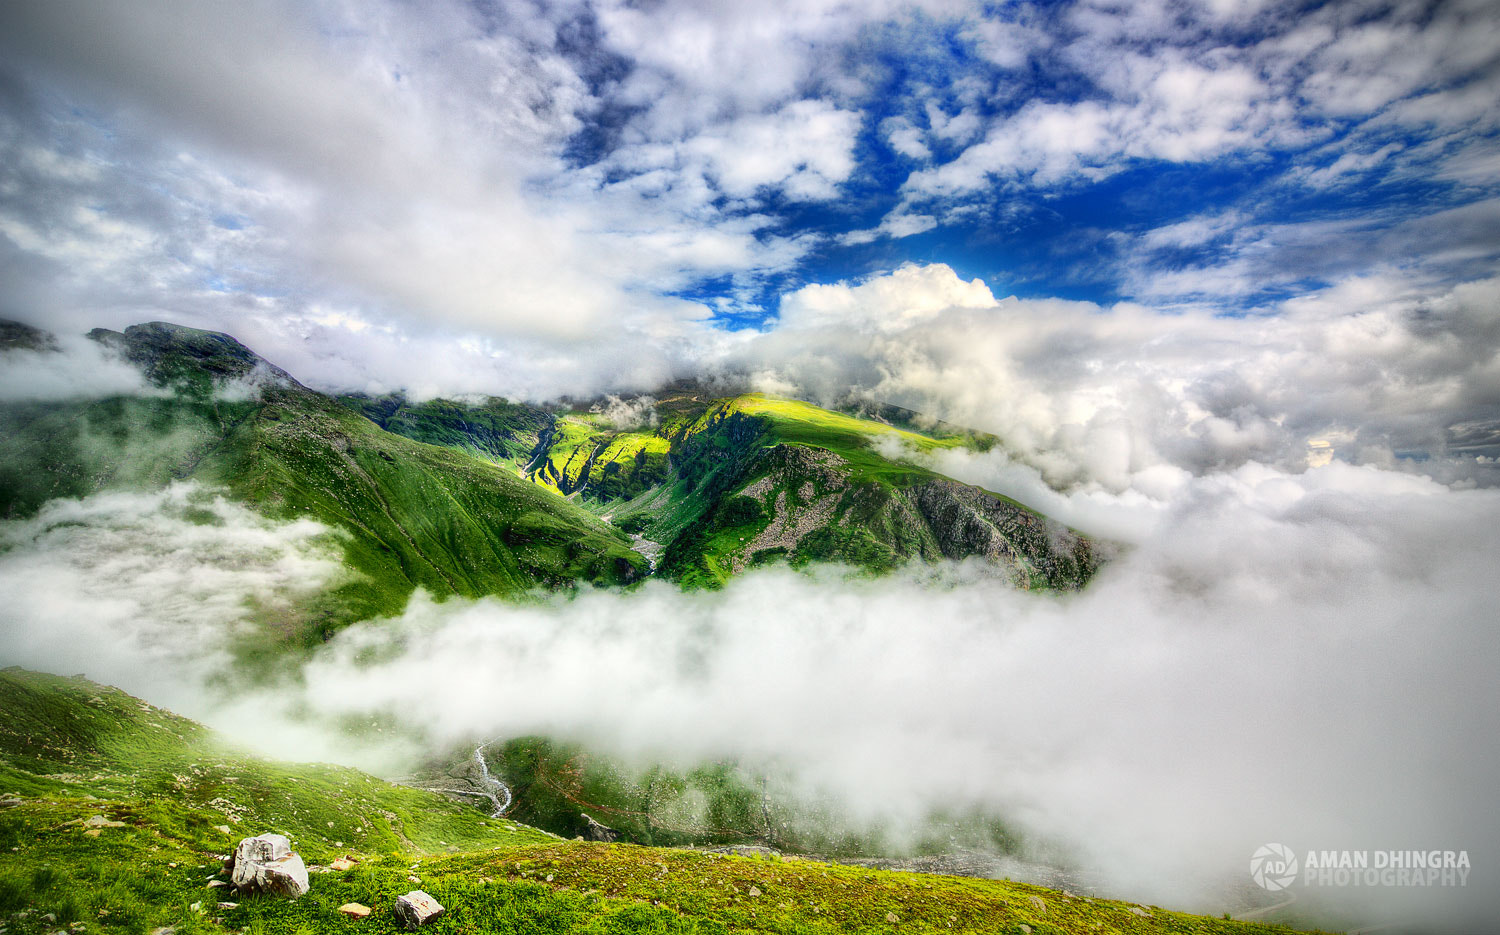 Photograph Above the Clouds by Aman Dhingra on 500px